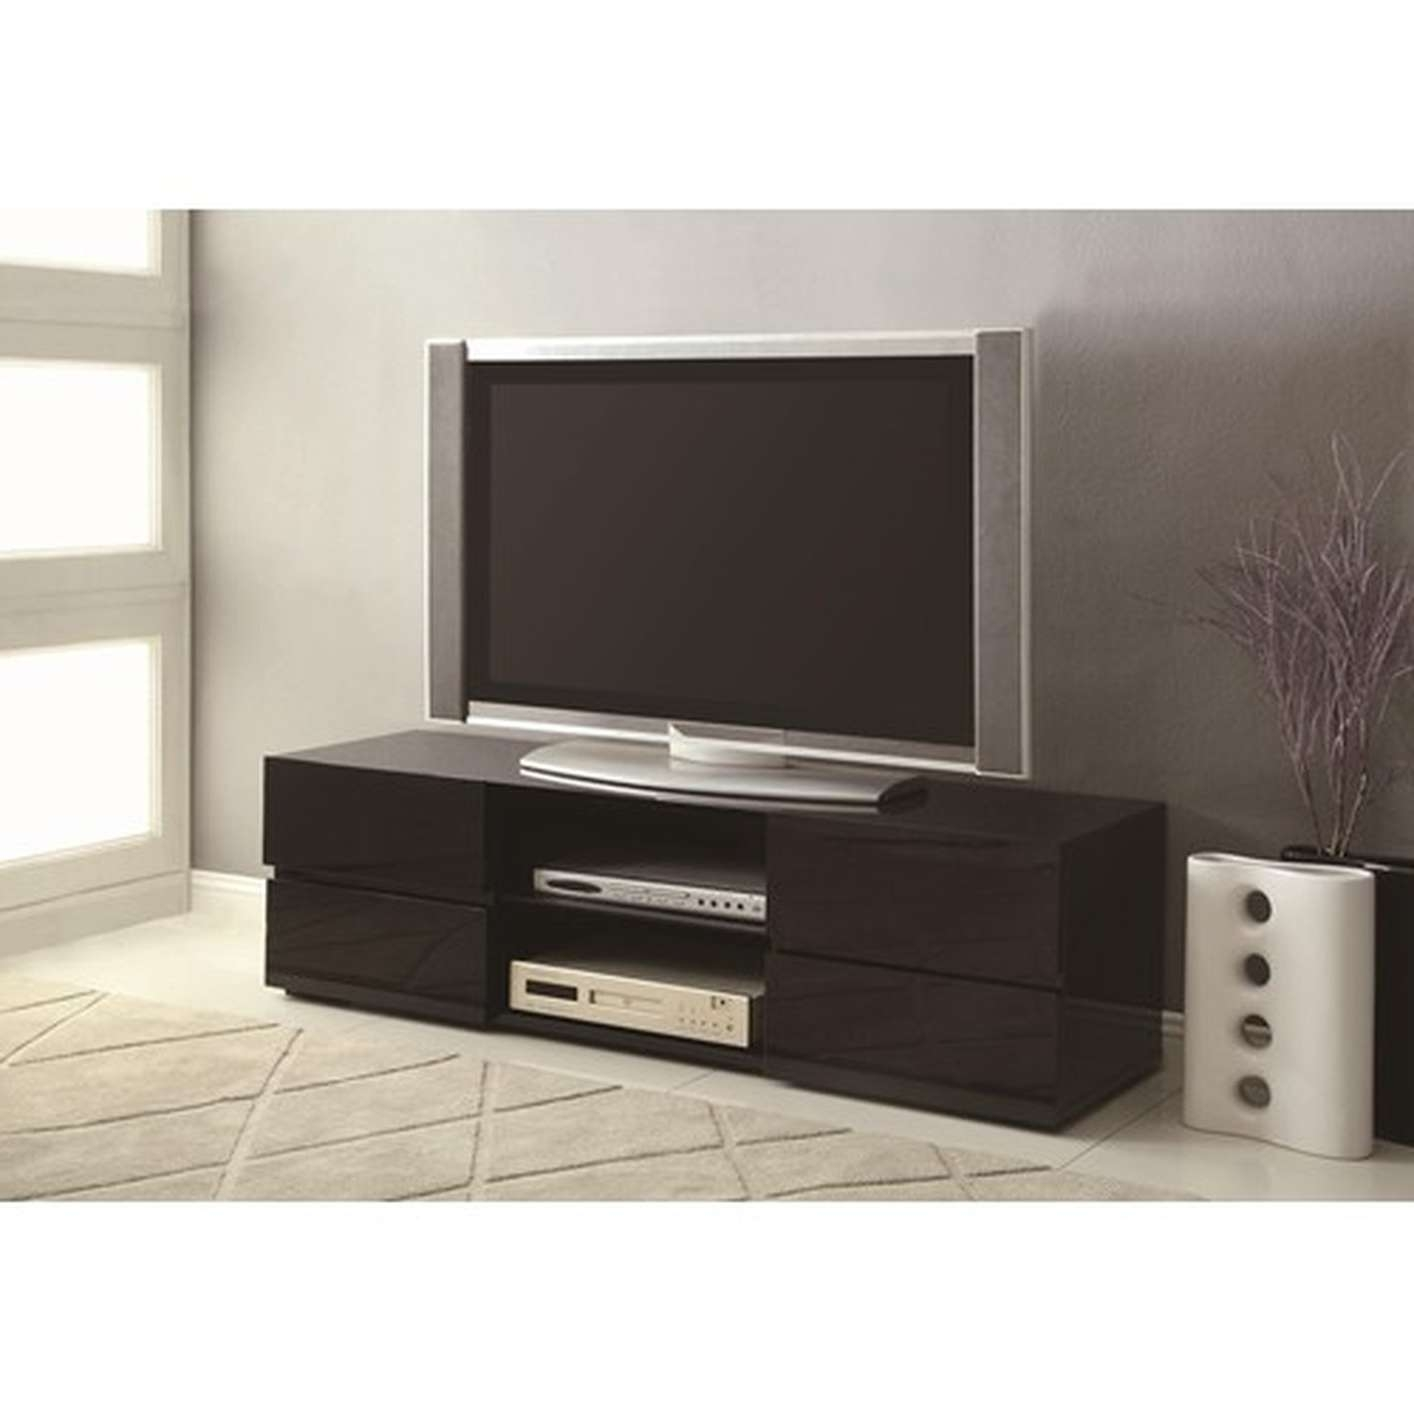 Modern Glossy Black Painted Solid Wood Tv Stand With 4 Drawers Inside Solid Wood Black Tv Stands (View 9 of 15)